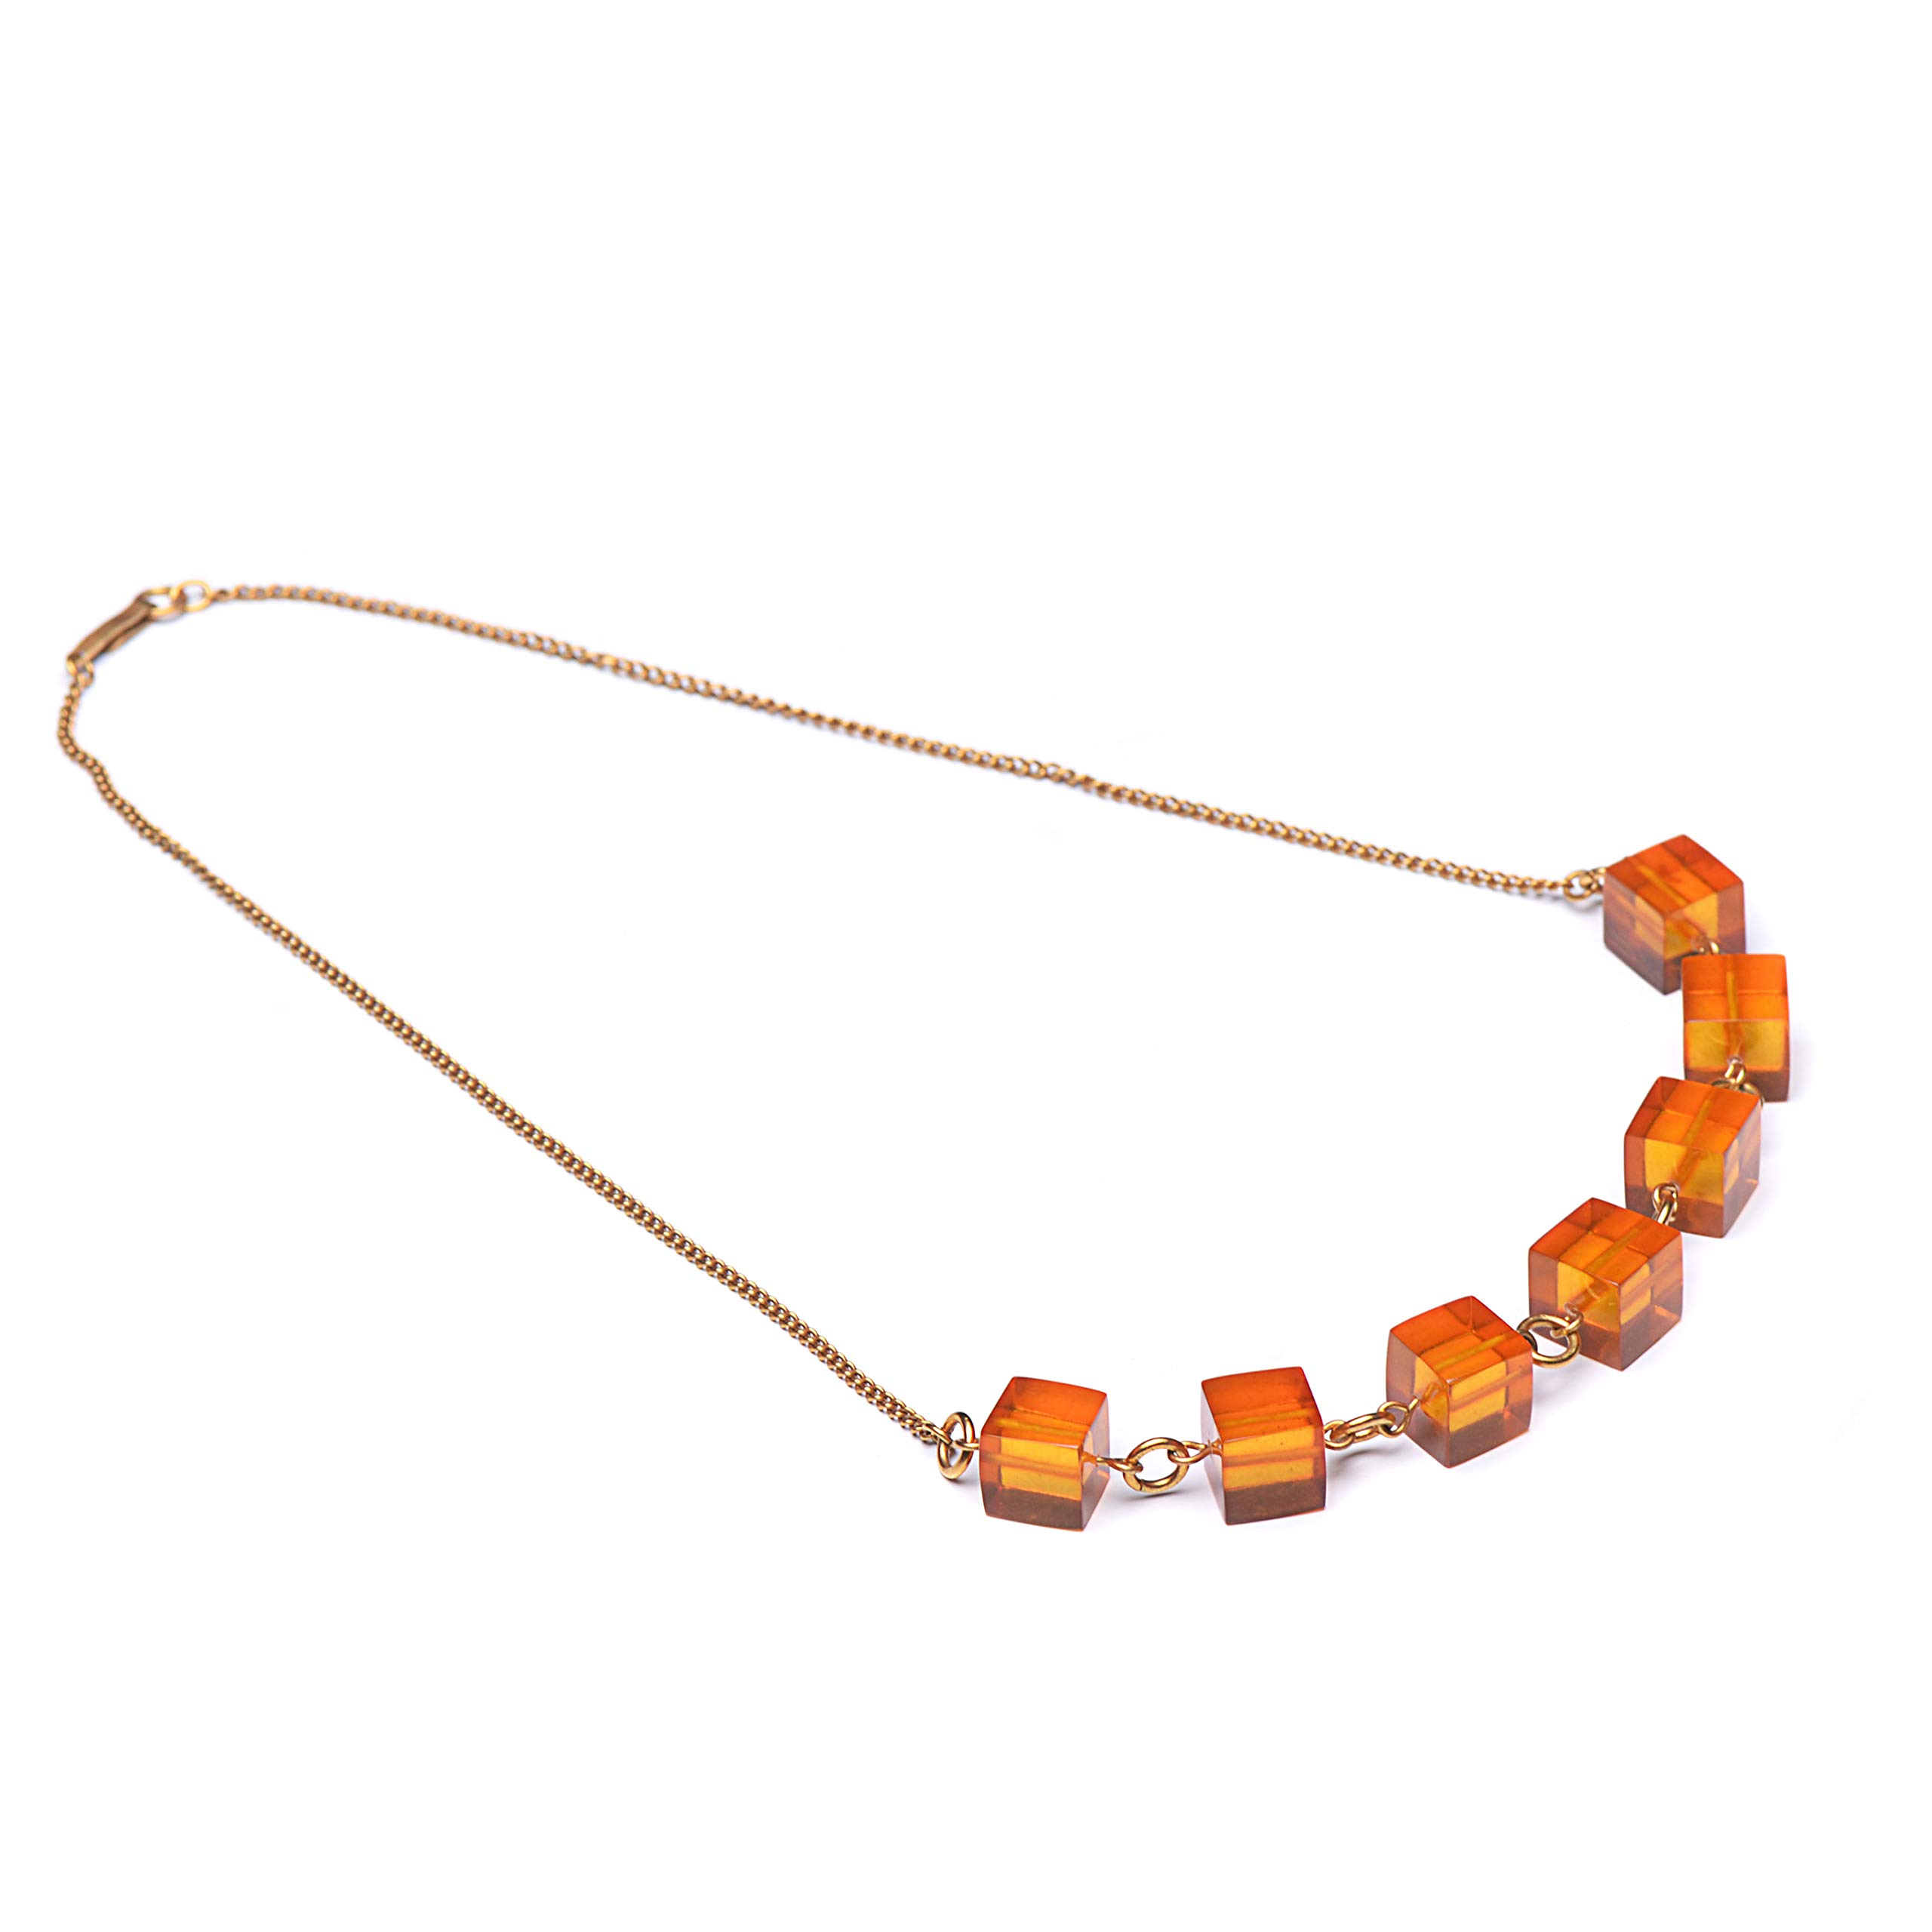 Necklace with Amber Pendants - Gold Color Chain with Cognac Amber Pendants - Baltic Amber by Genuine Amber